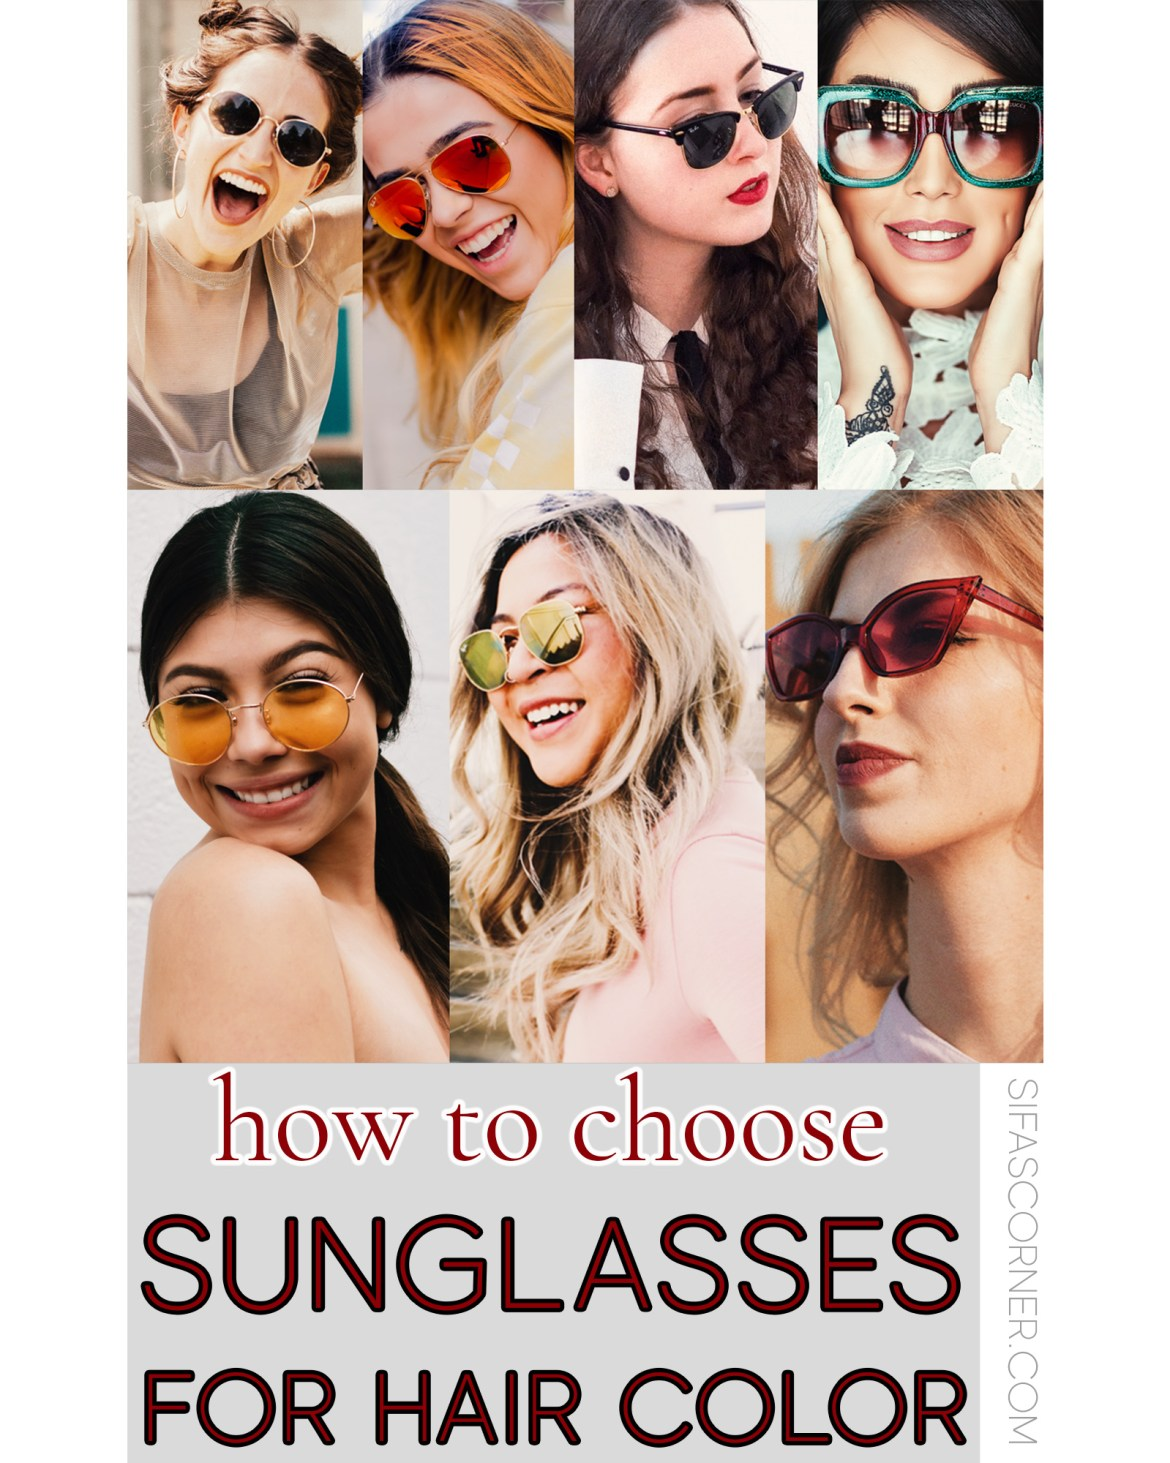 women with different sunglasses for different hair color